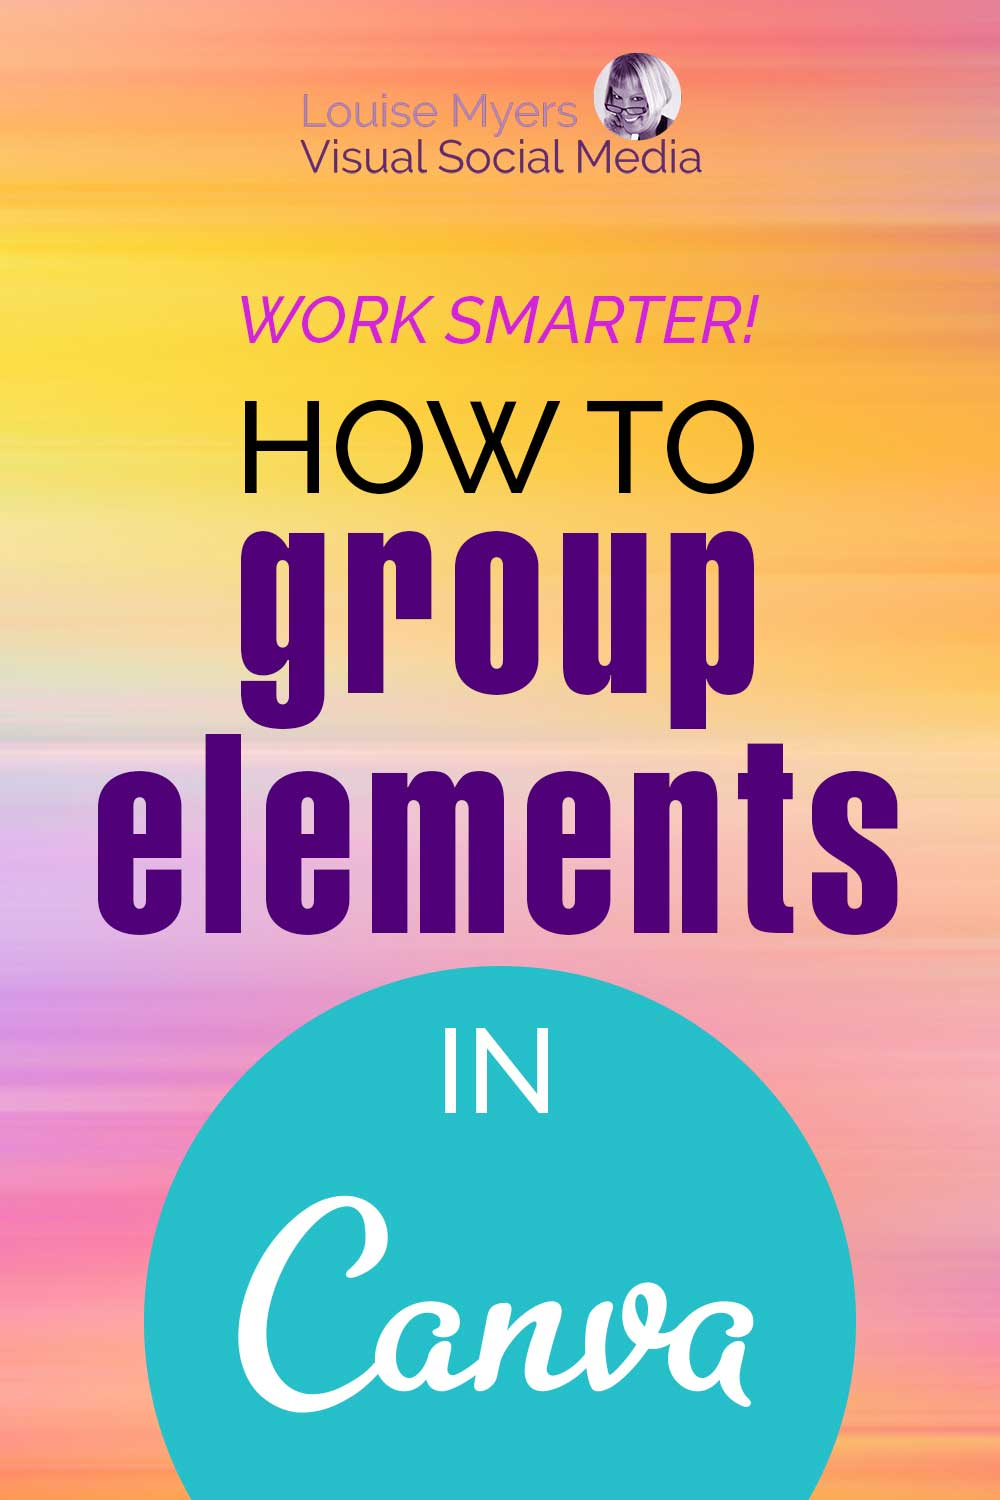 pastel art with text work smarter, how to group elements in canva.